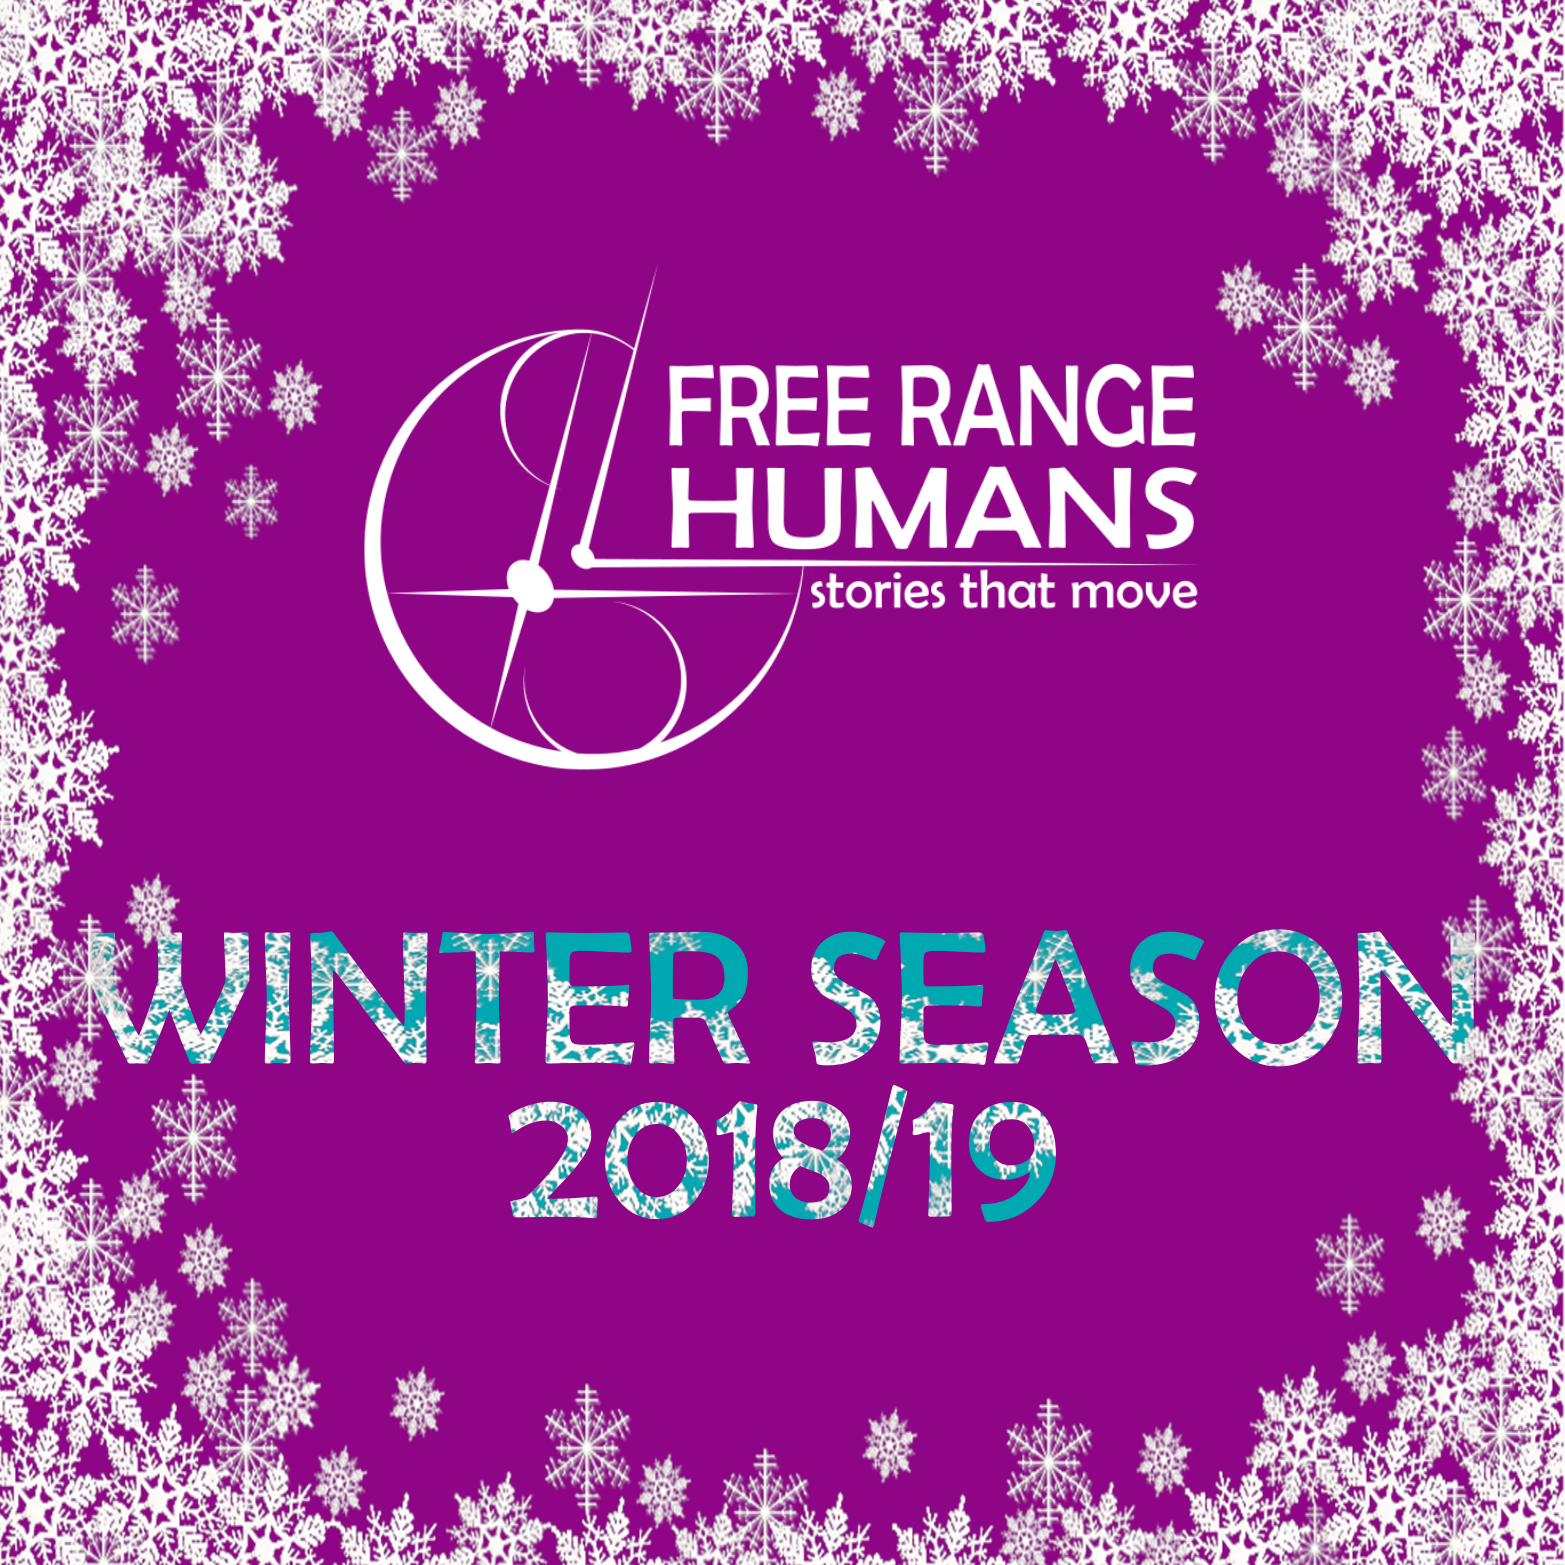 FREE RANGE HUMANS | Season Announcement